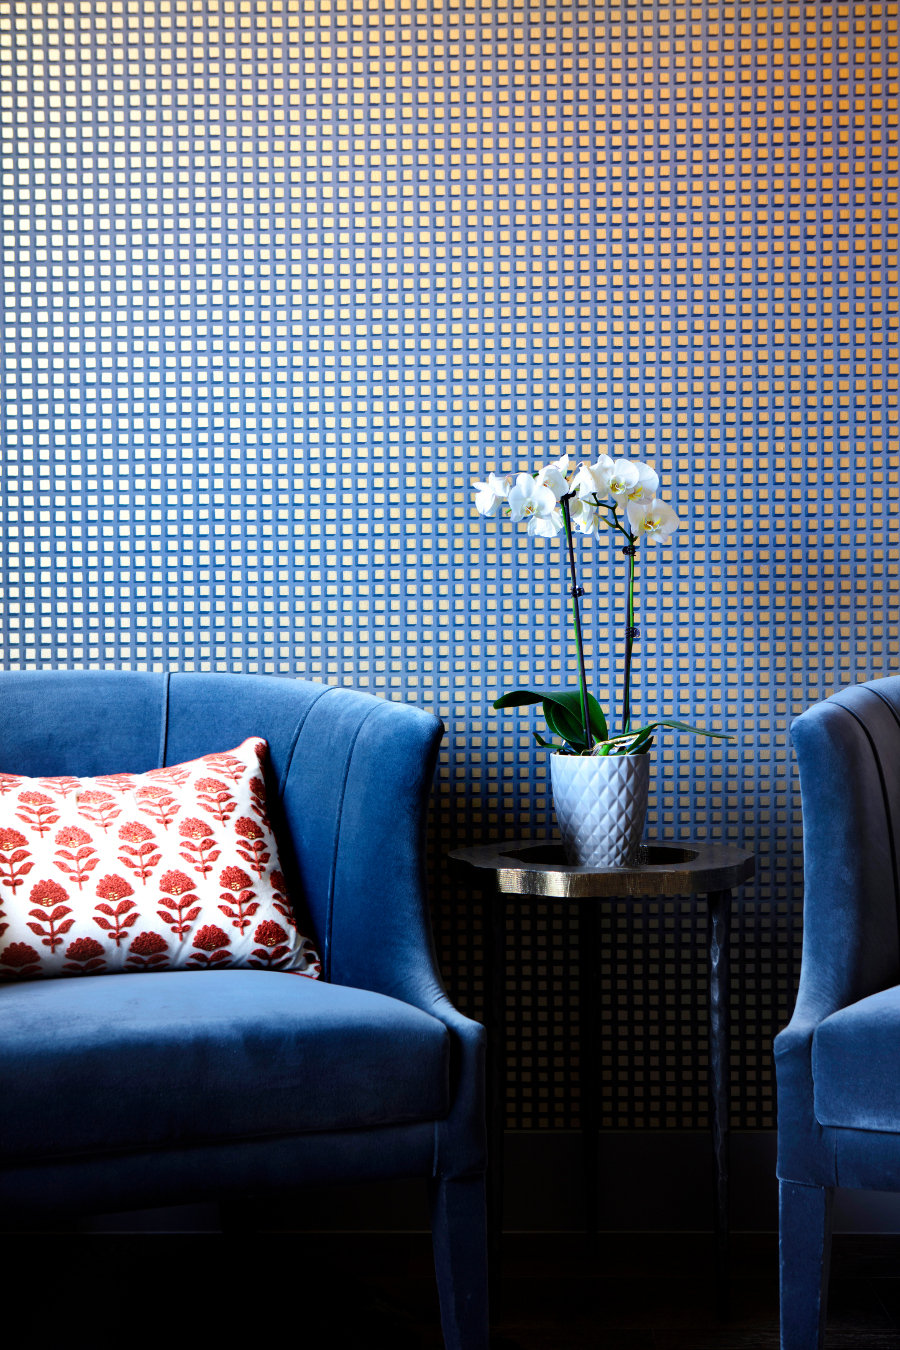 Etch-Design-Group-Eclectically-Edgy-Residence-Featuring-BRABBU etch design group Etch Design Group: Eclectic Residence With Upholstered Furniture Etch Design Group Eclectically Edgy Residence Featuring BRABBU 3